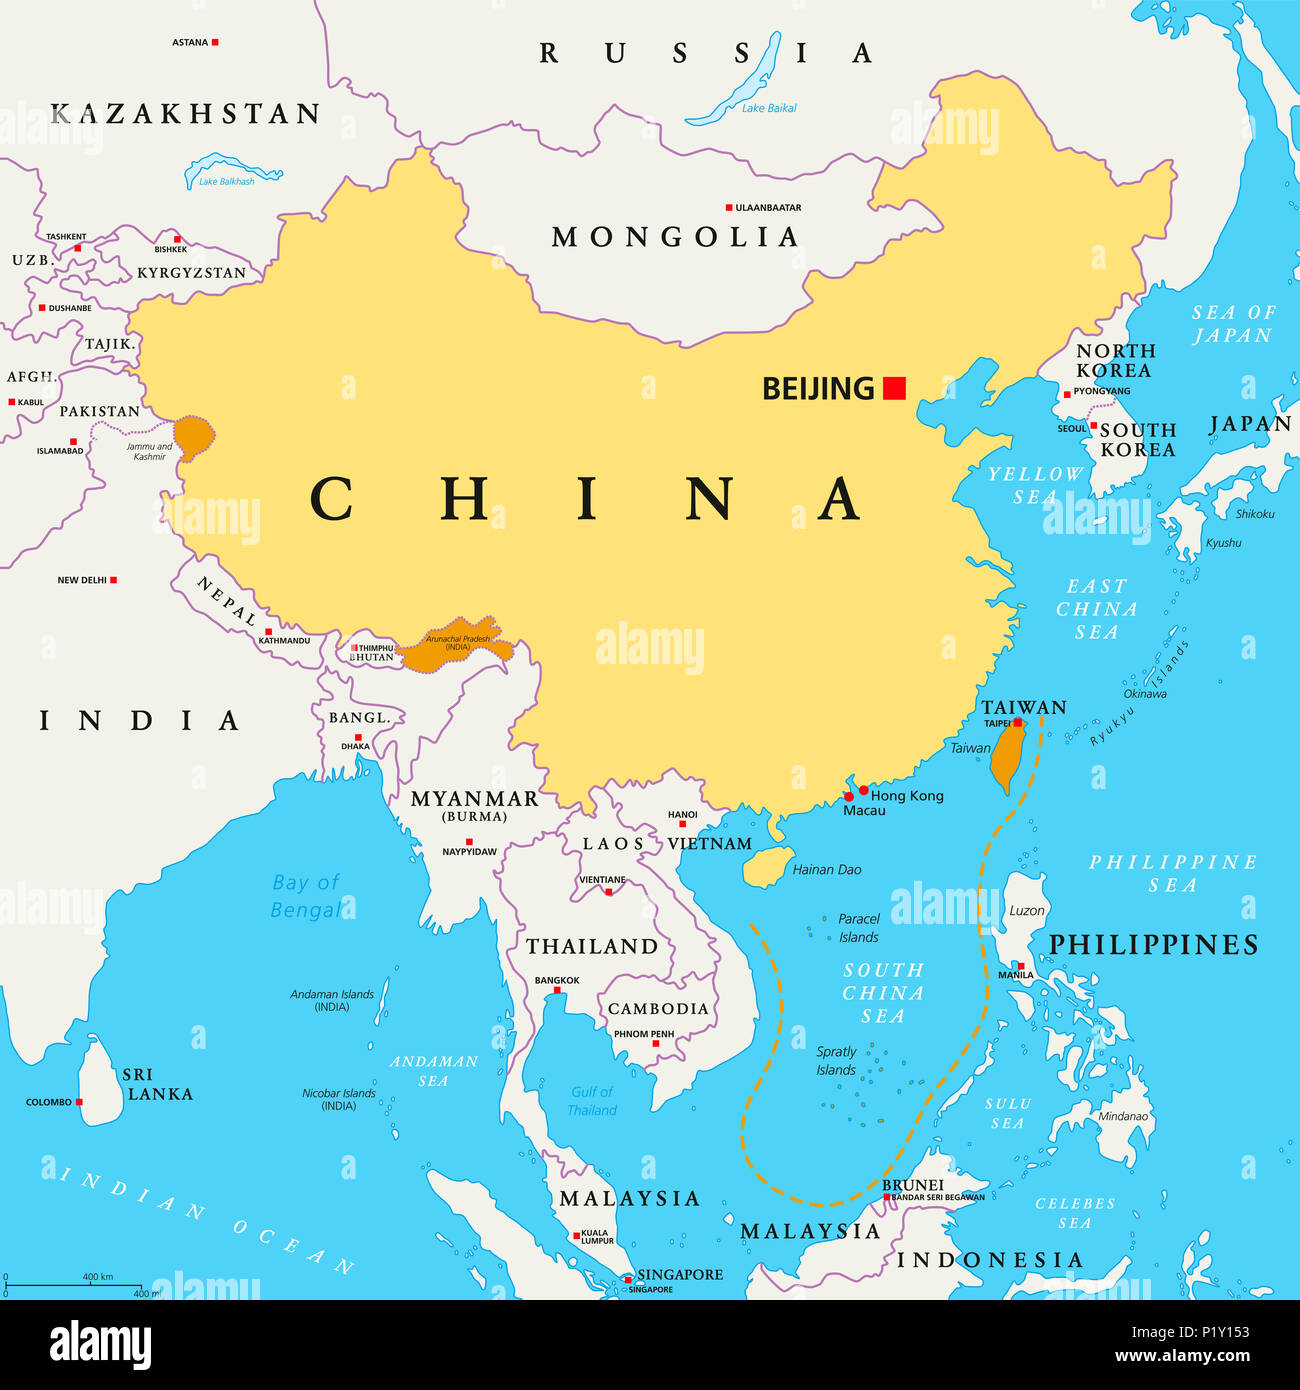 Peoples Republic Of China Prc Political Map Area